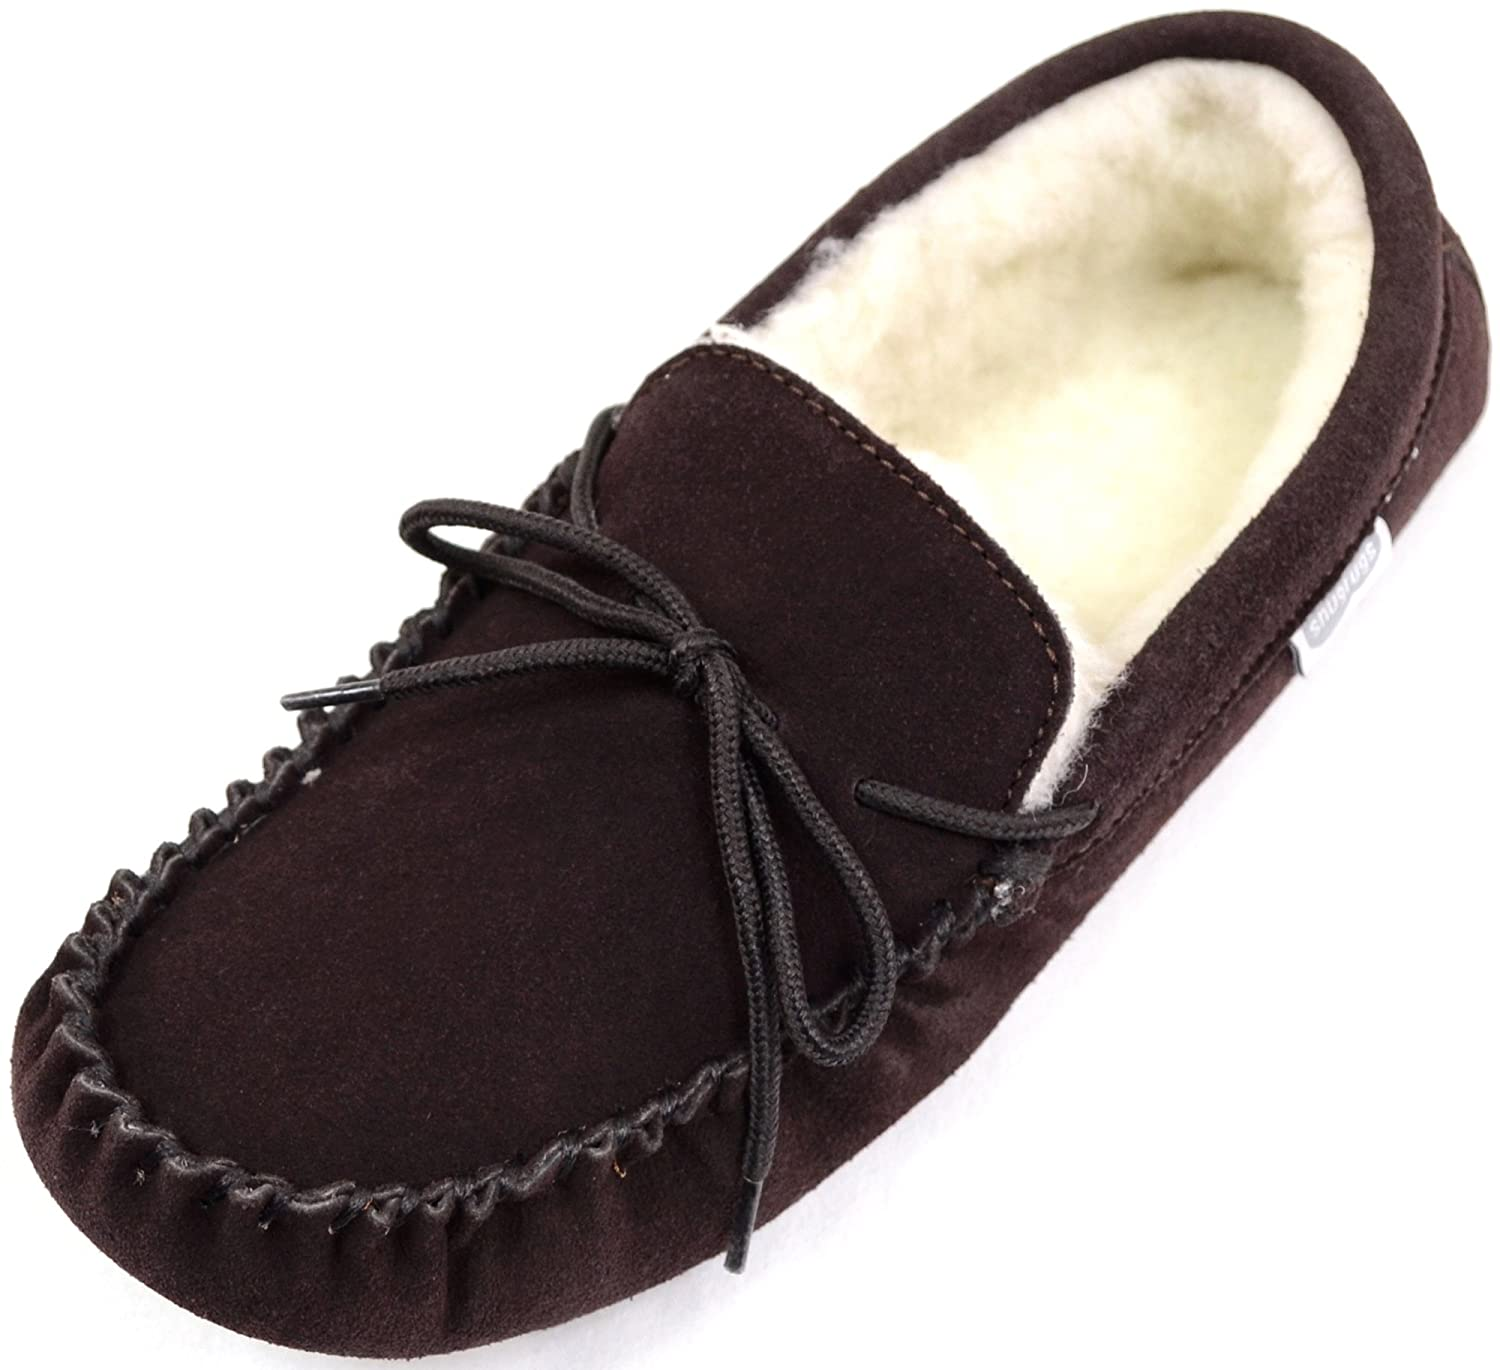 shoes amazon bedroom mens slipper whistler pin com orthaheel ortho